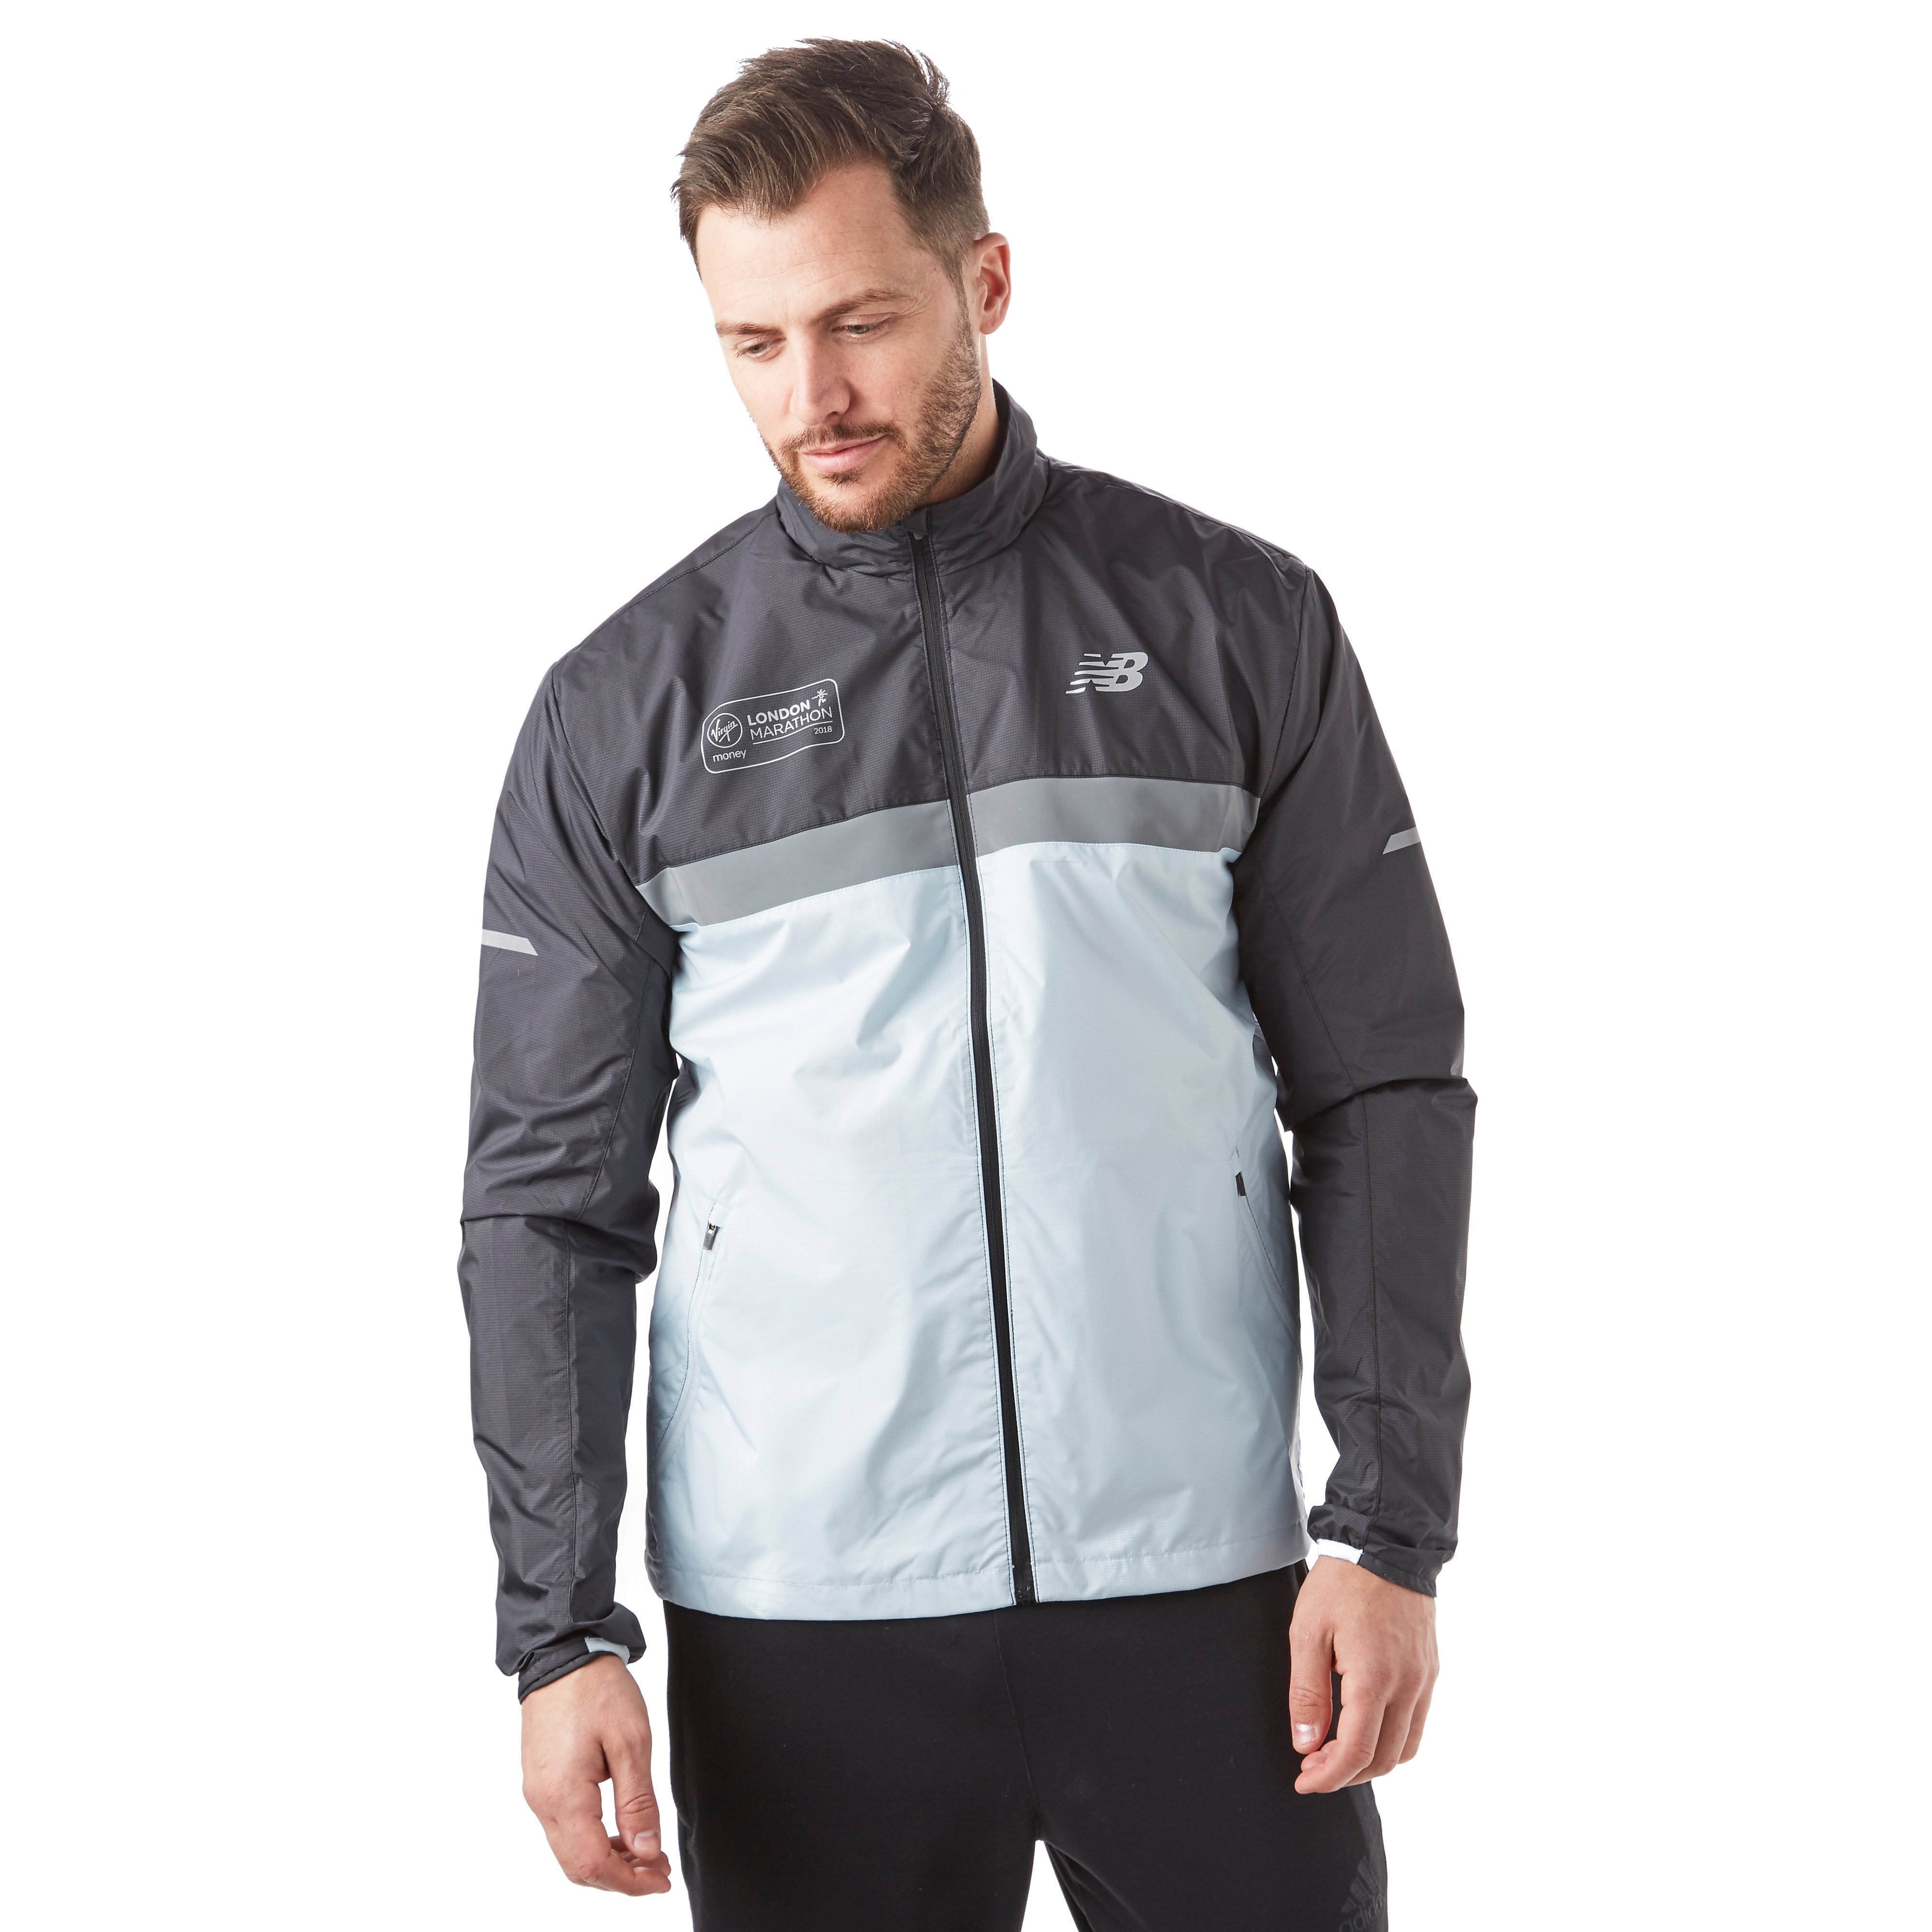 New Balance London Marathon Edition Windcheater Men's Running Jacket